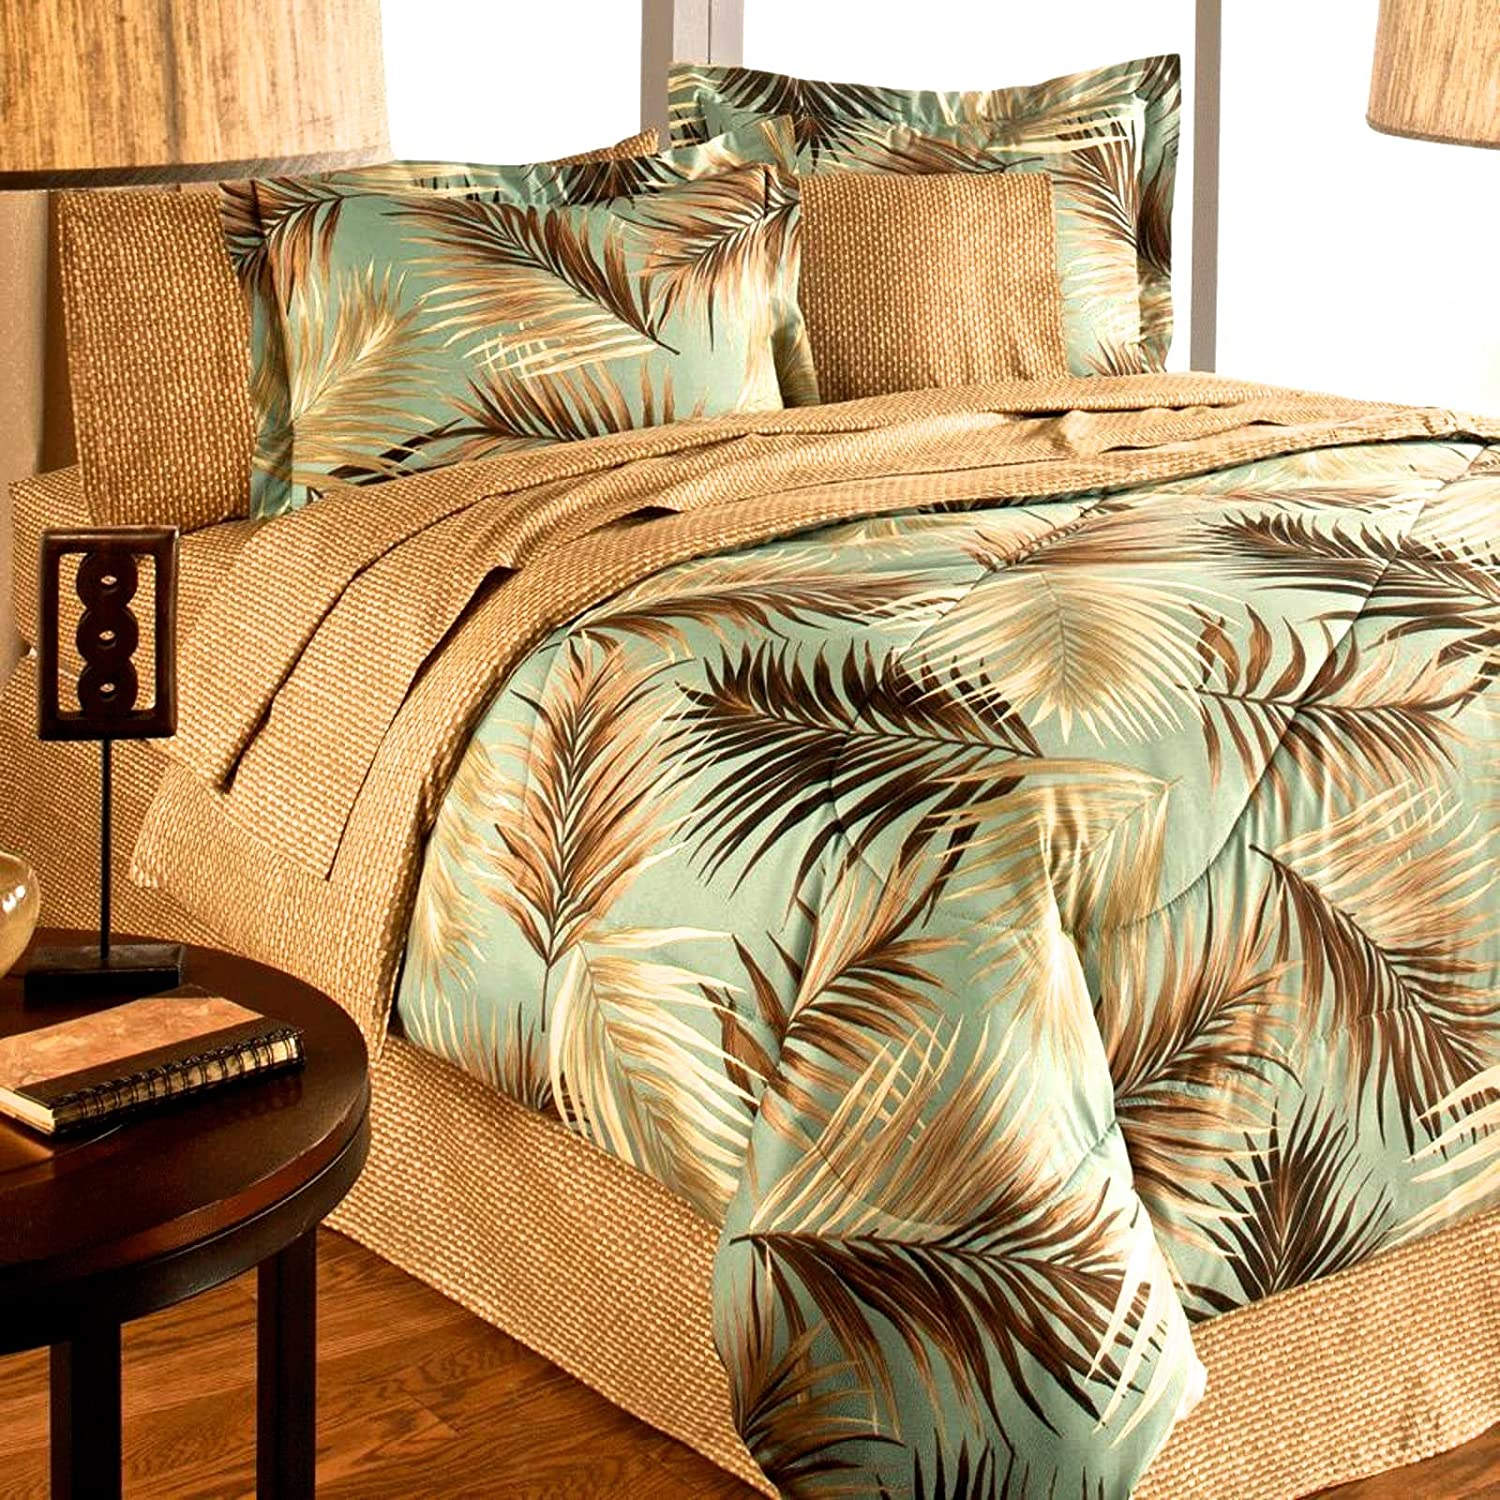 Coastal Bedding Comforter Set Bed in a Bag